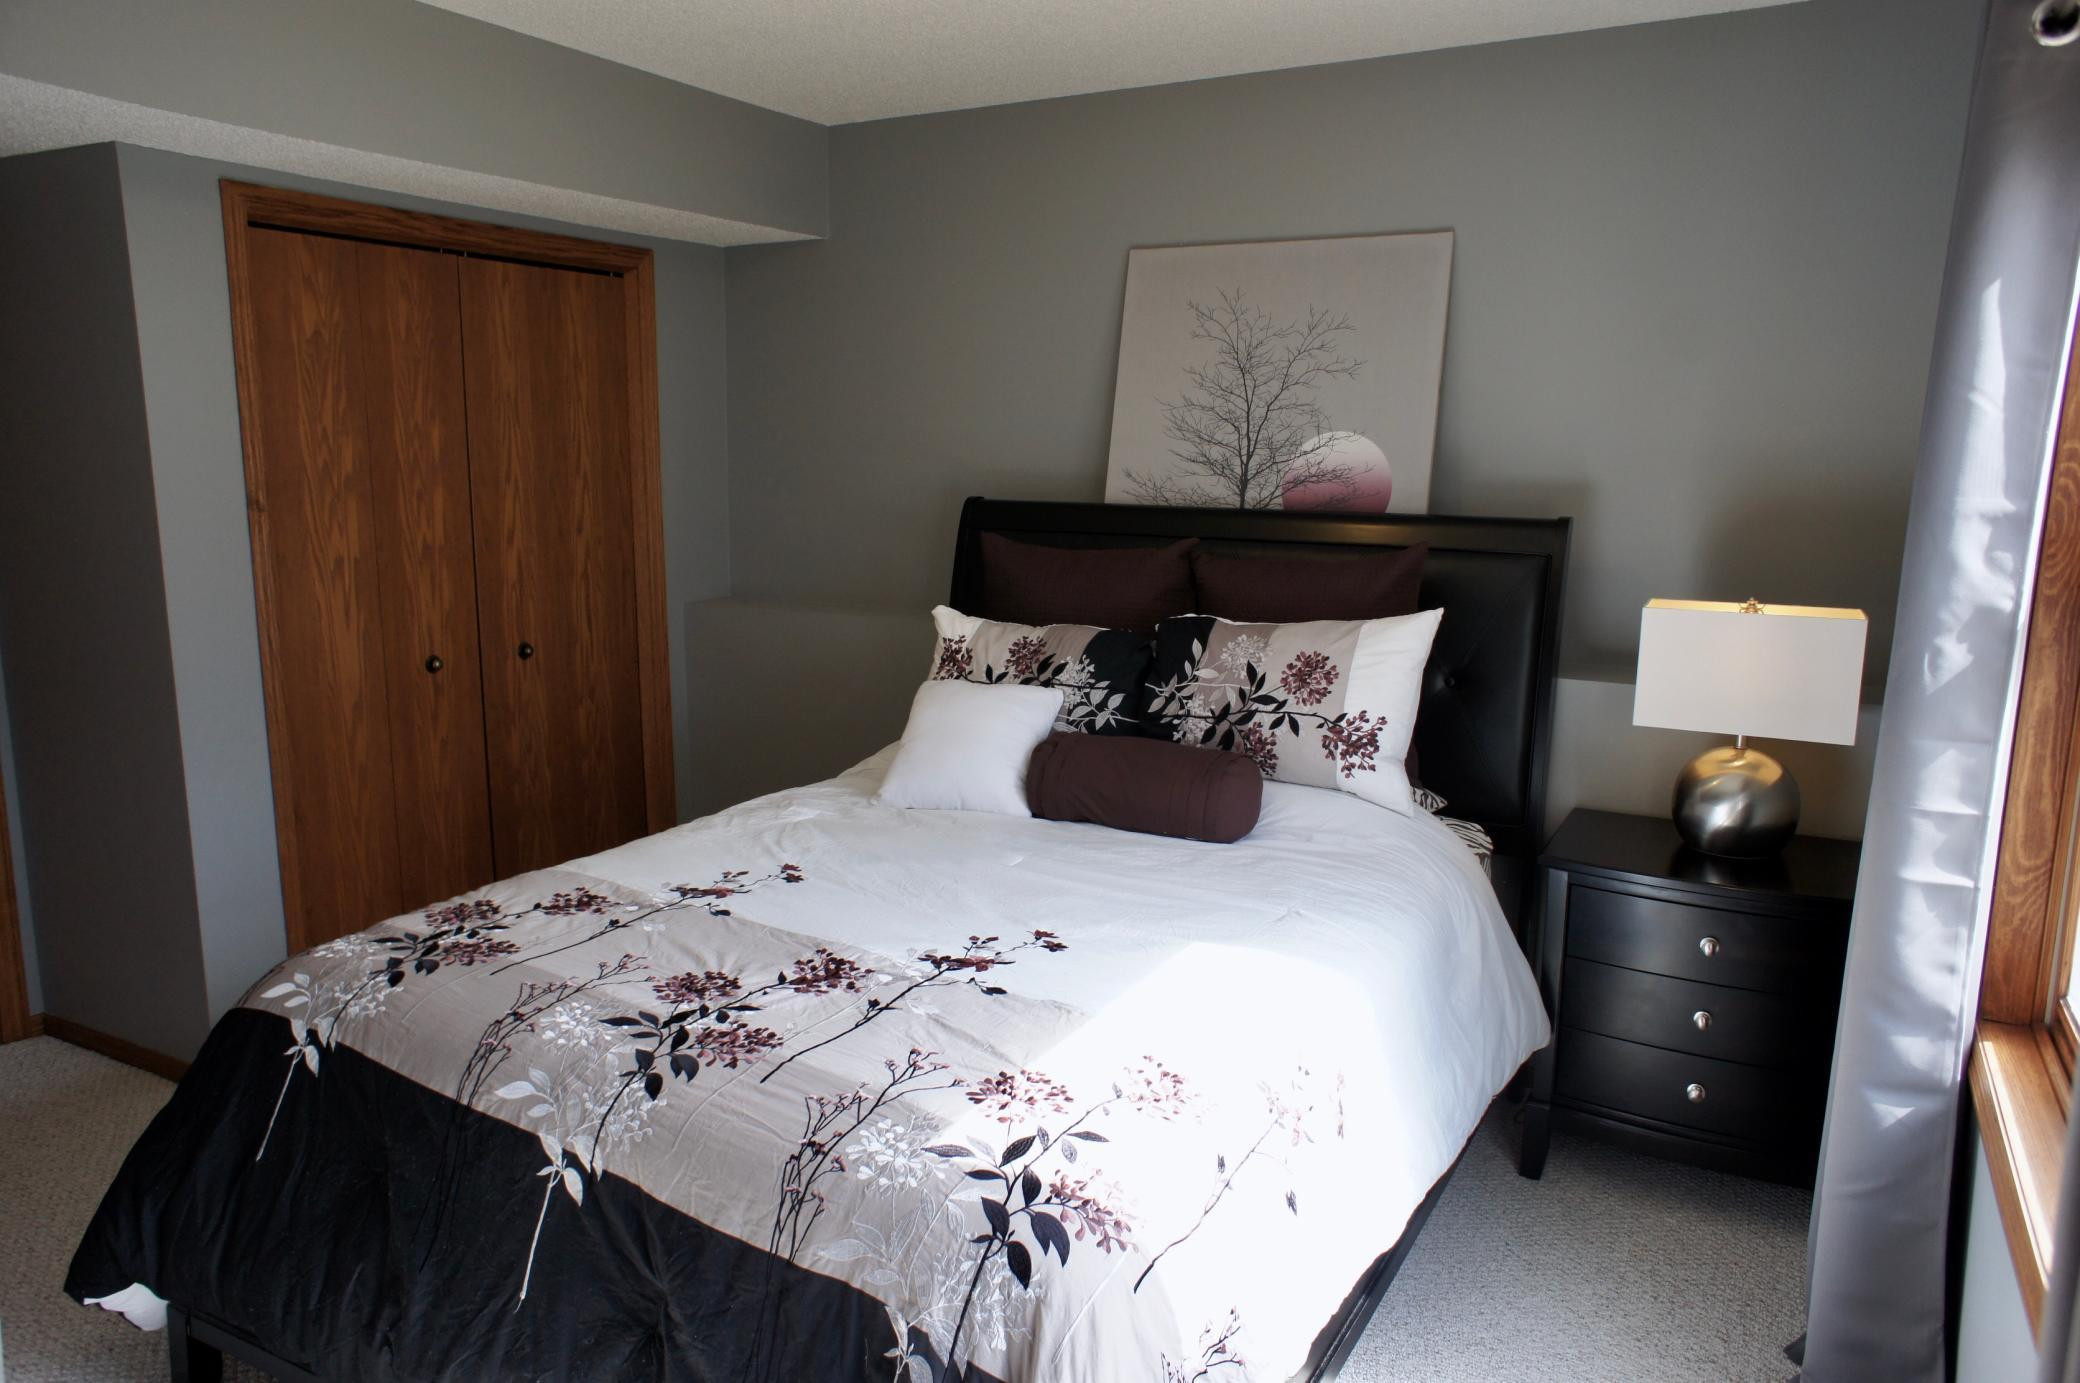 A 4th bedroom in the lower level with full lookout windows.